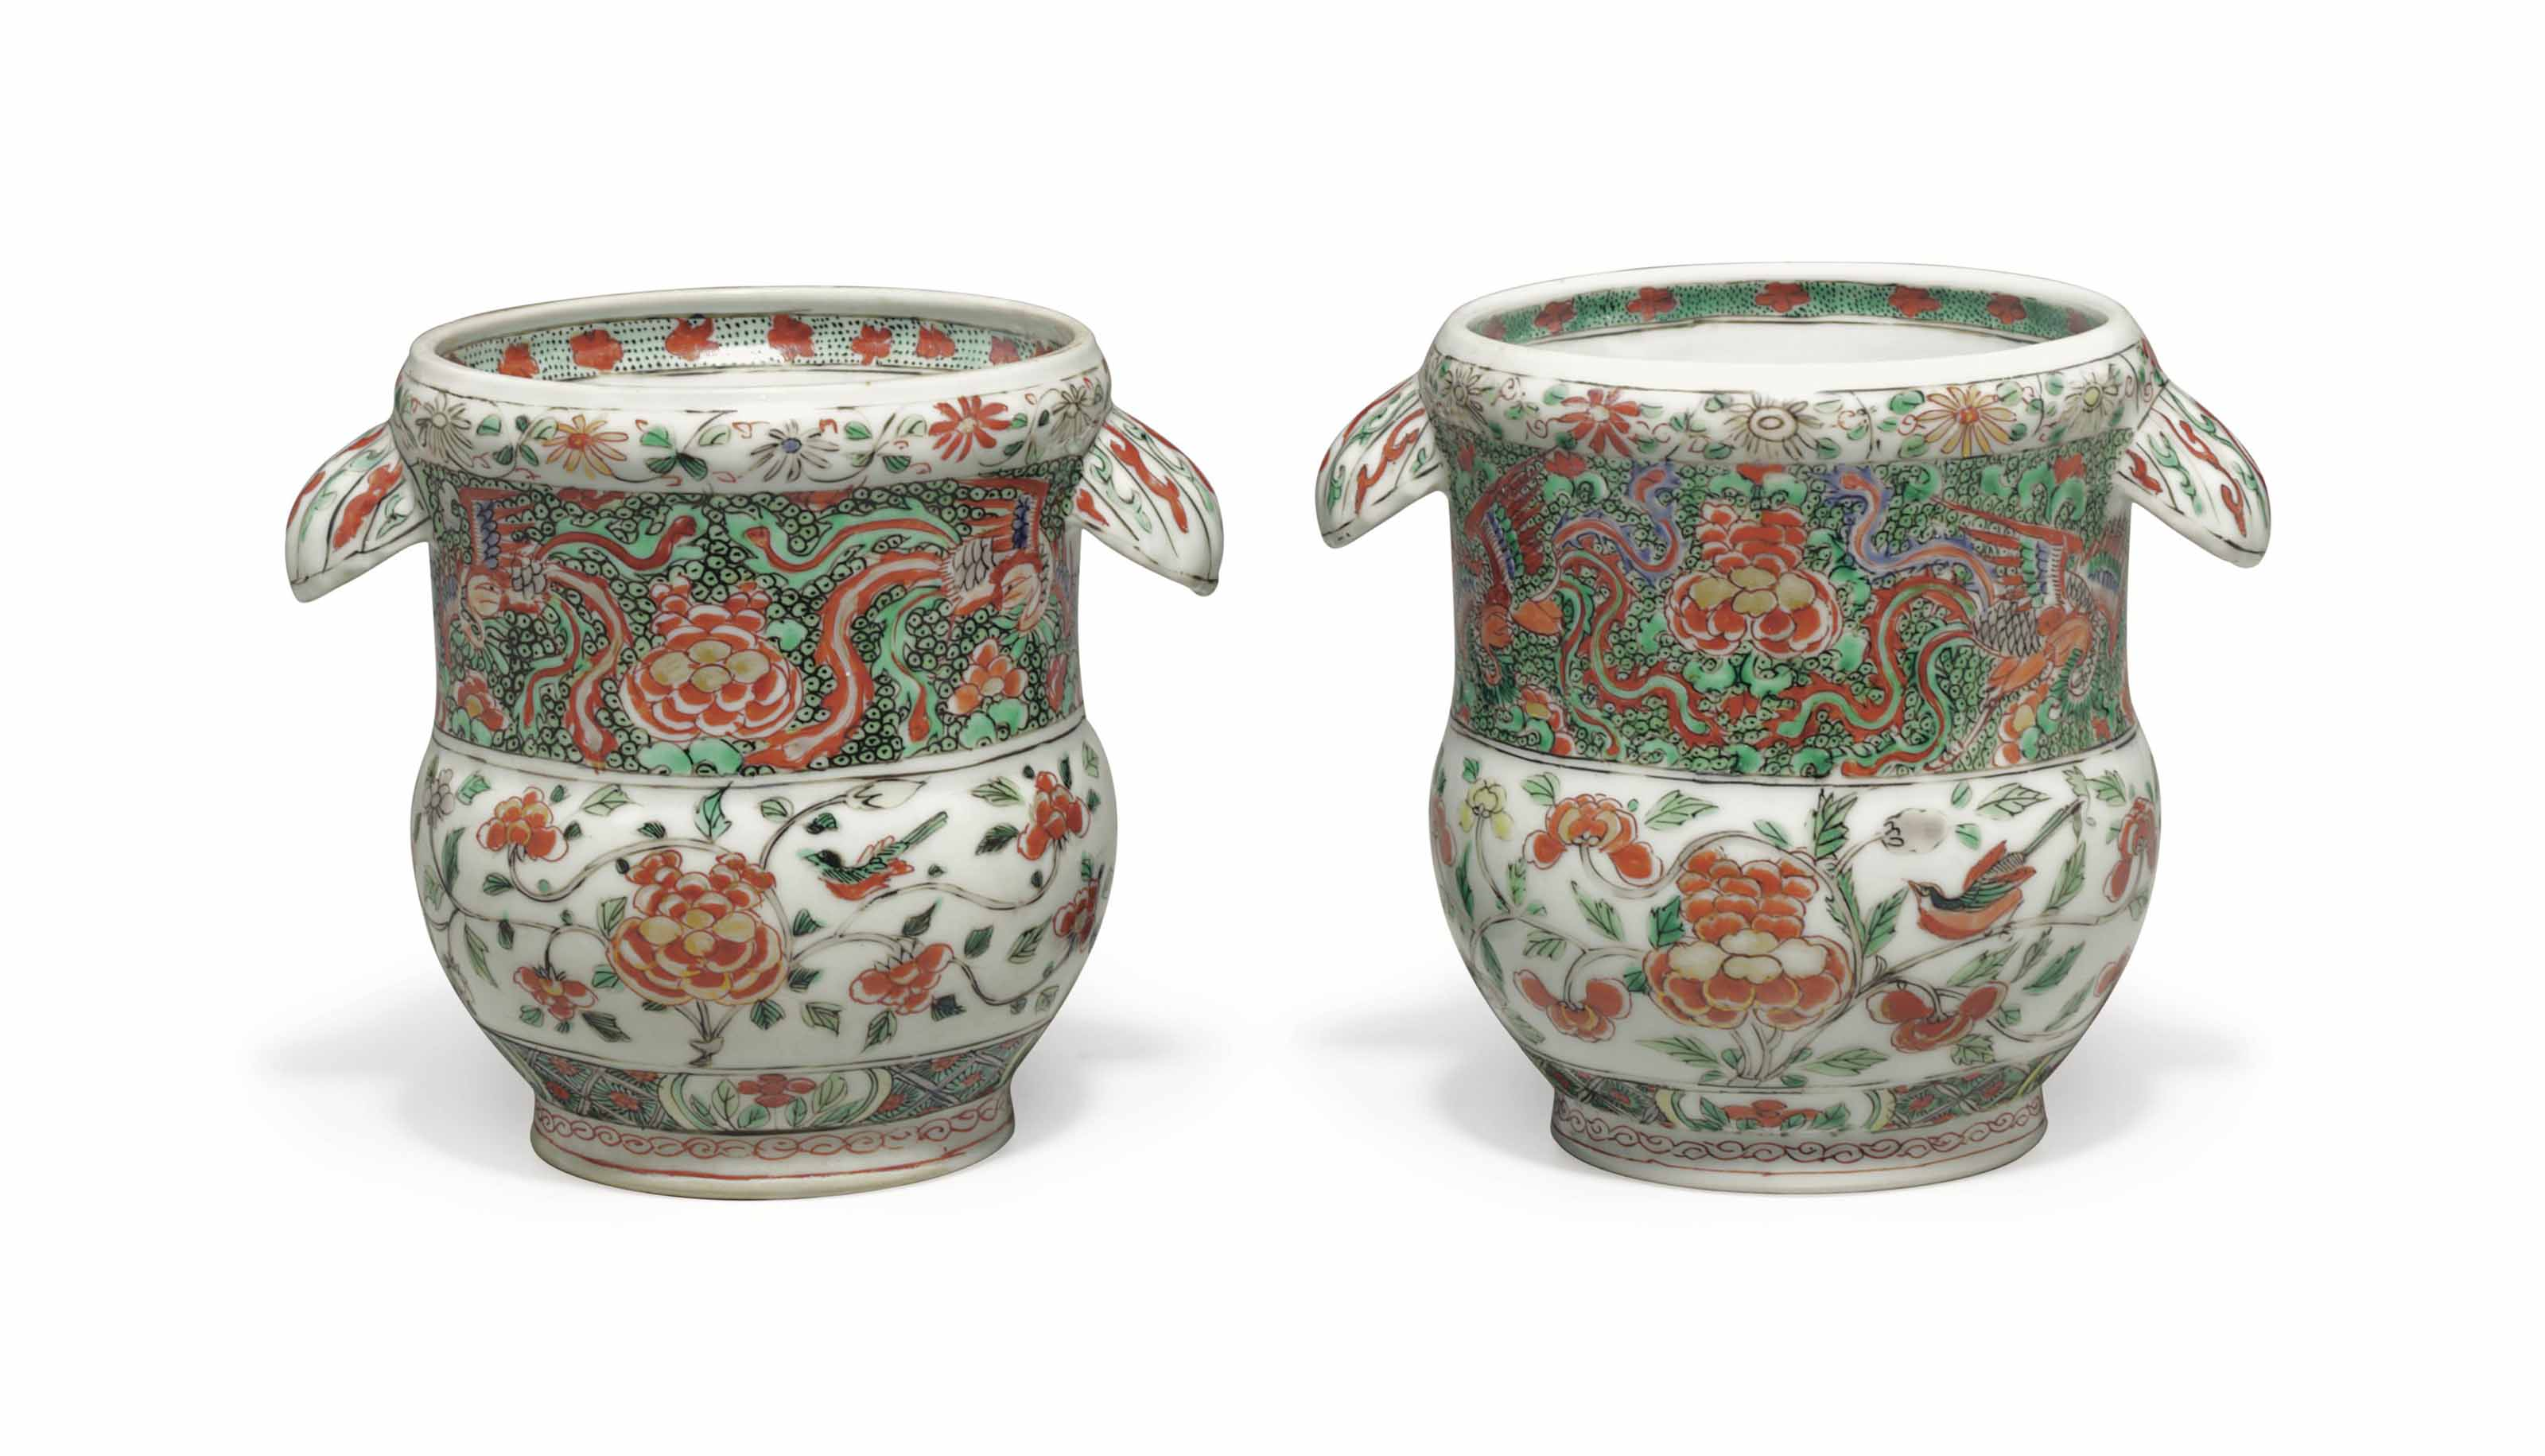 A SMALL PAIR OF CHINESE EXPORT FAMILLE VERTE BOTTLE COOLERS